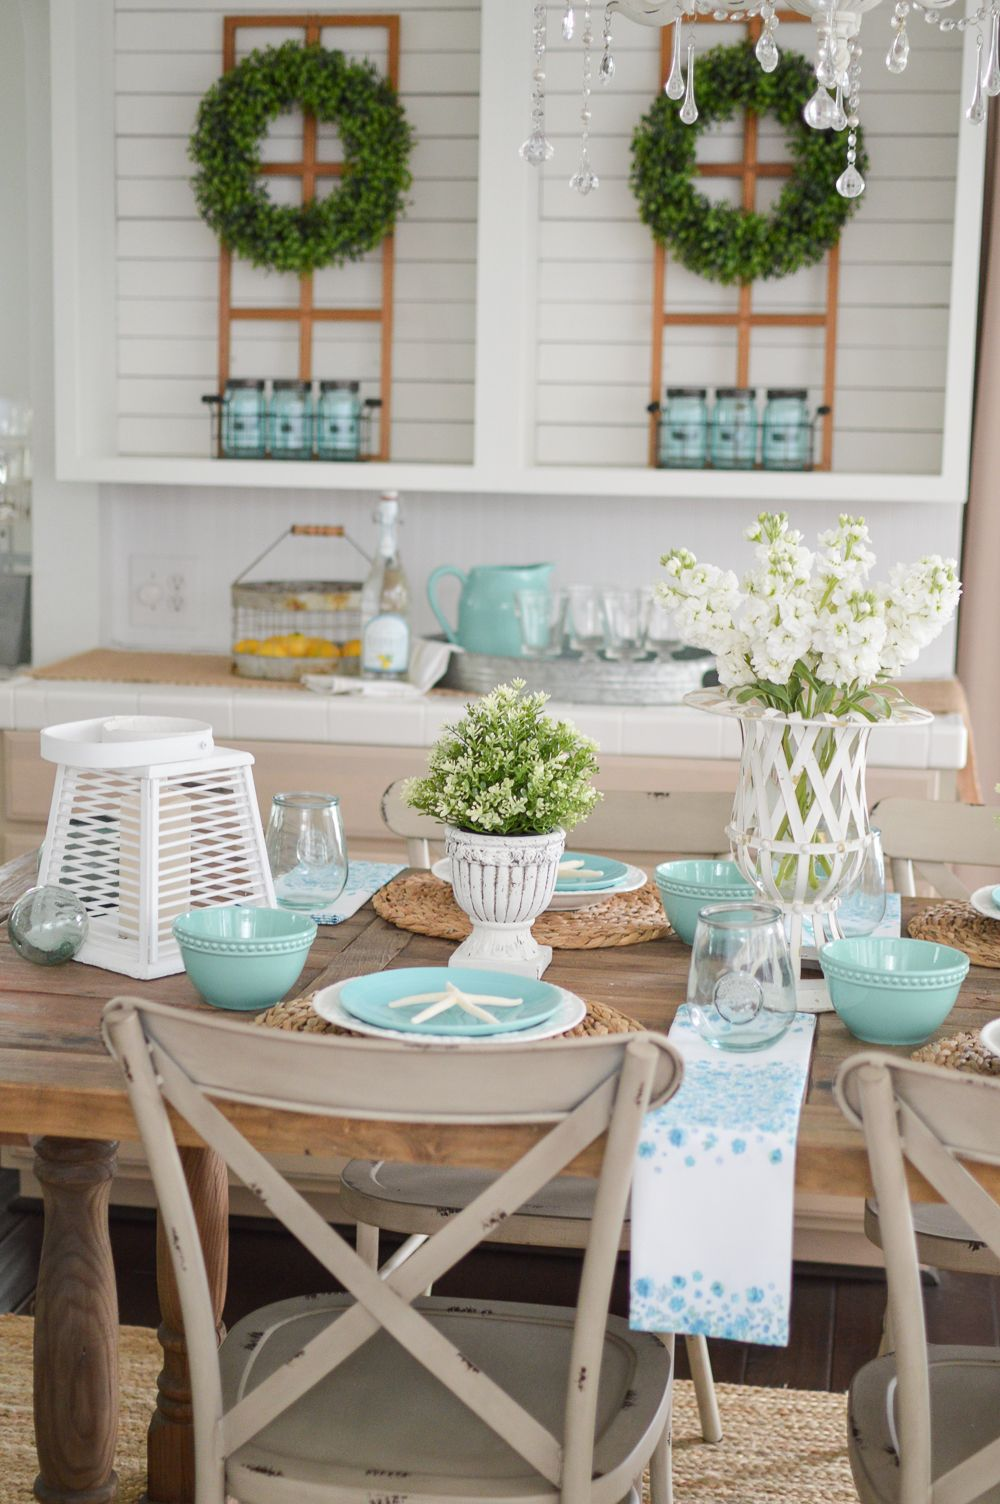 Simple Summer Decorating Ideas Farmhouse Table Decor Farmhouse Table Centerpieces Coastal Dining Room Decor